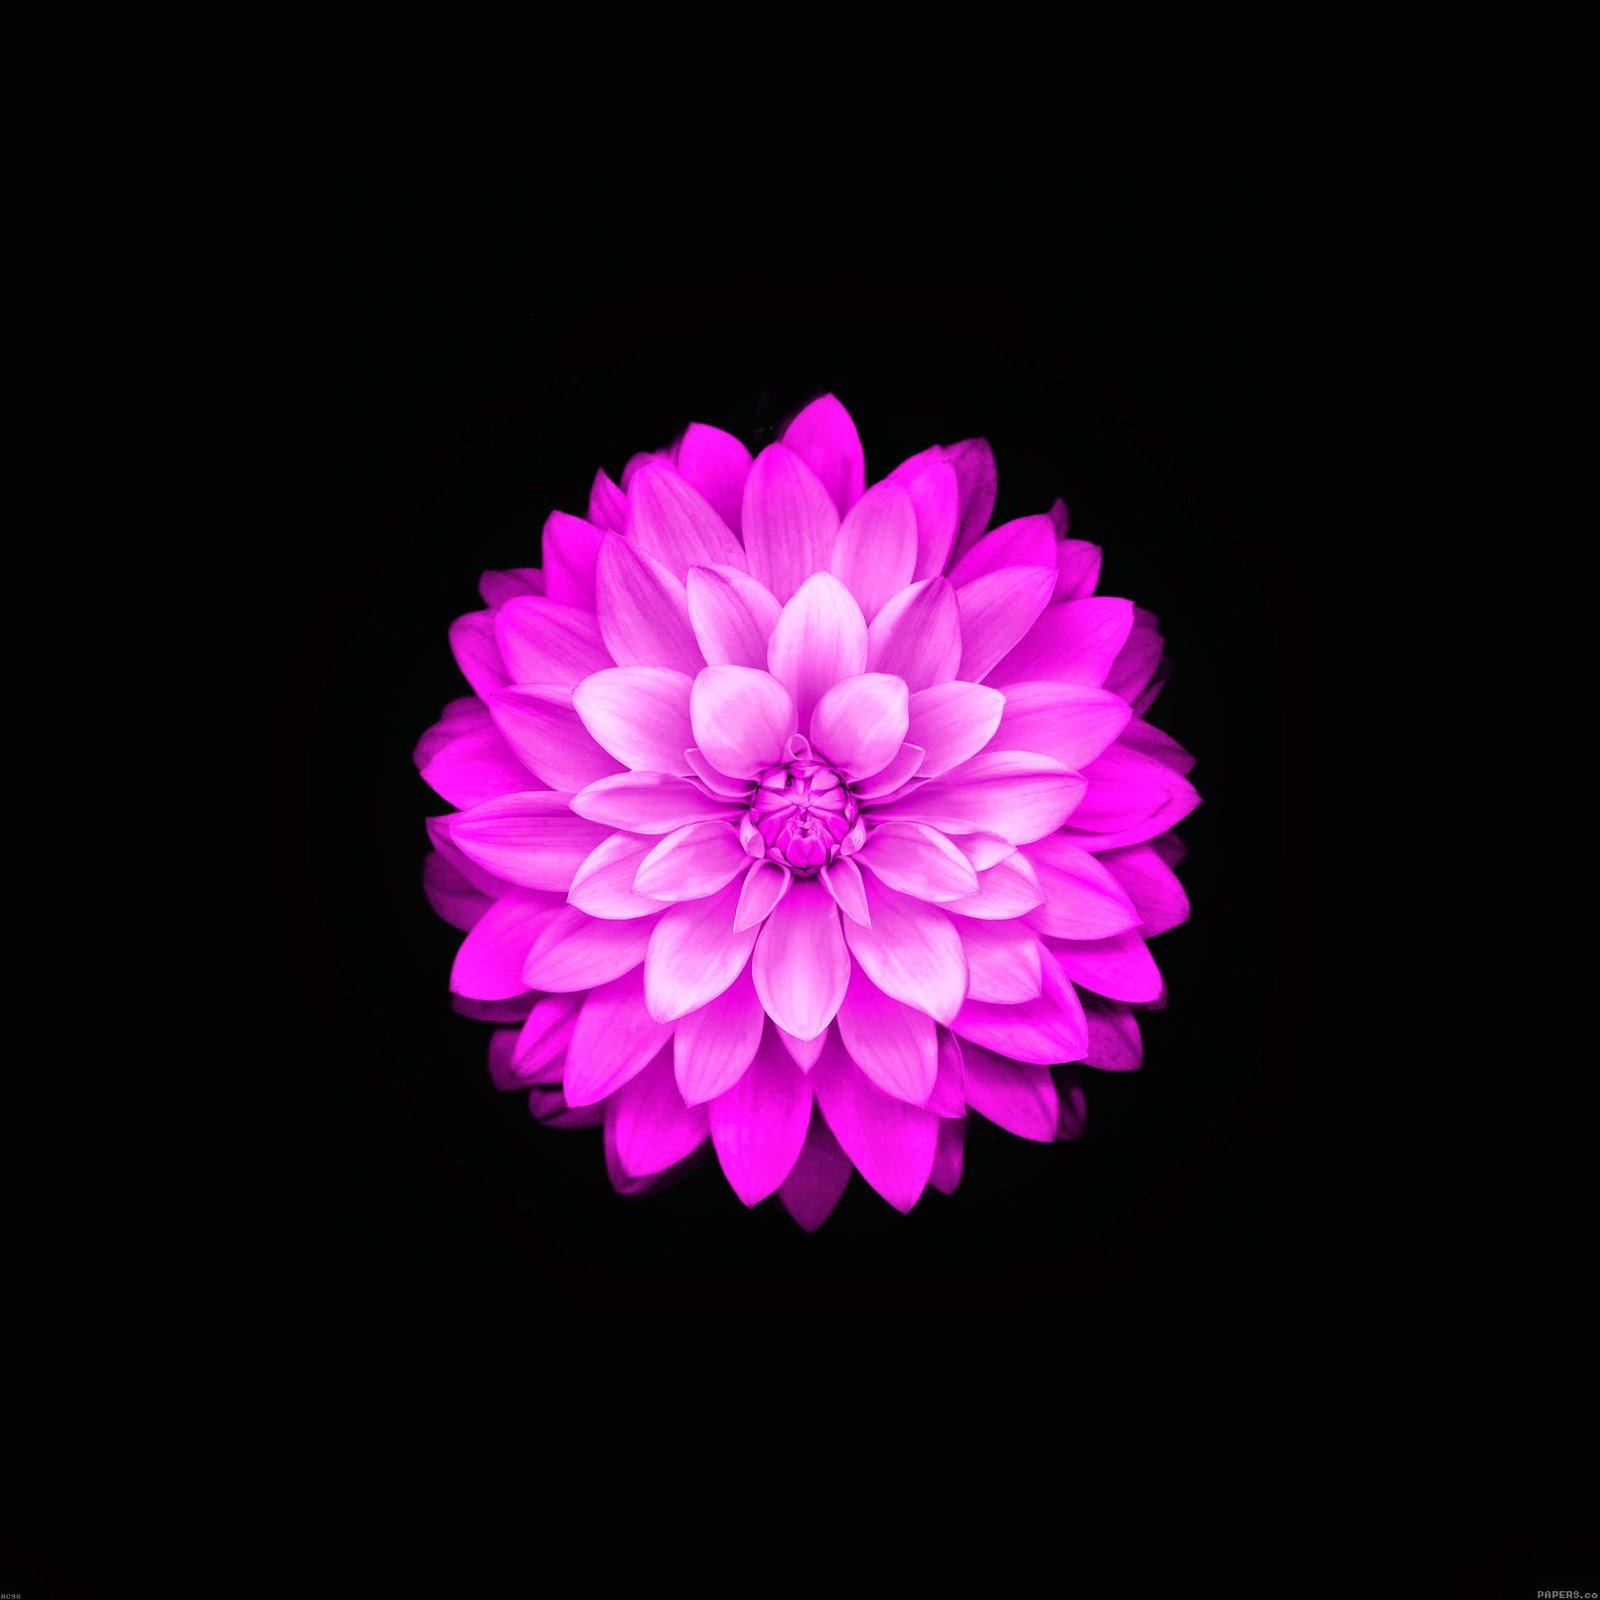 Iphone6 Wallpapers: IPhone 6 Plus Flower Wallpaper